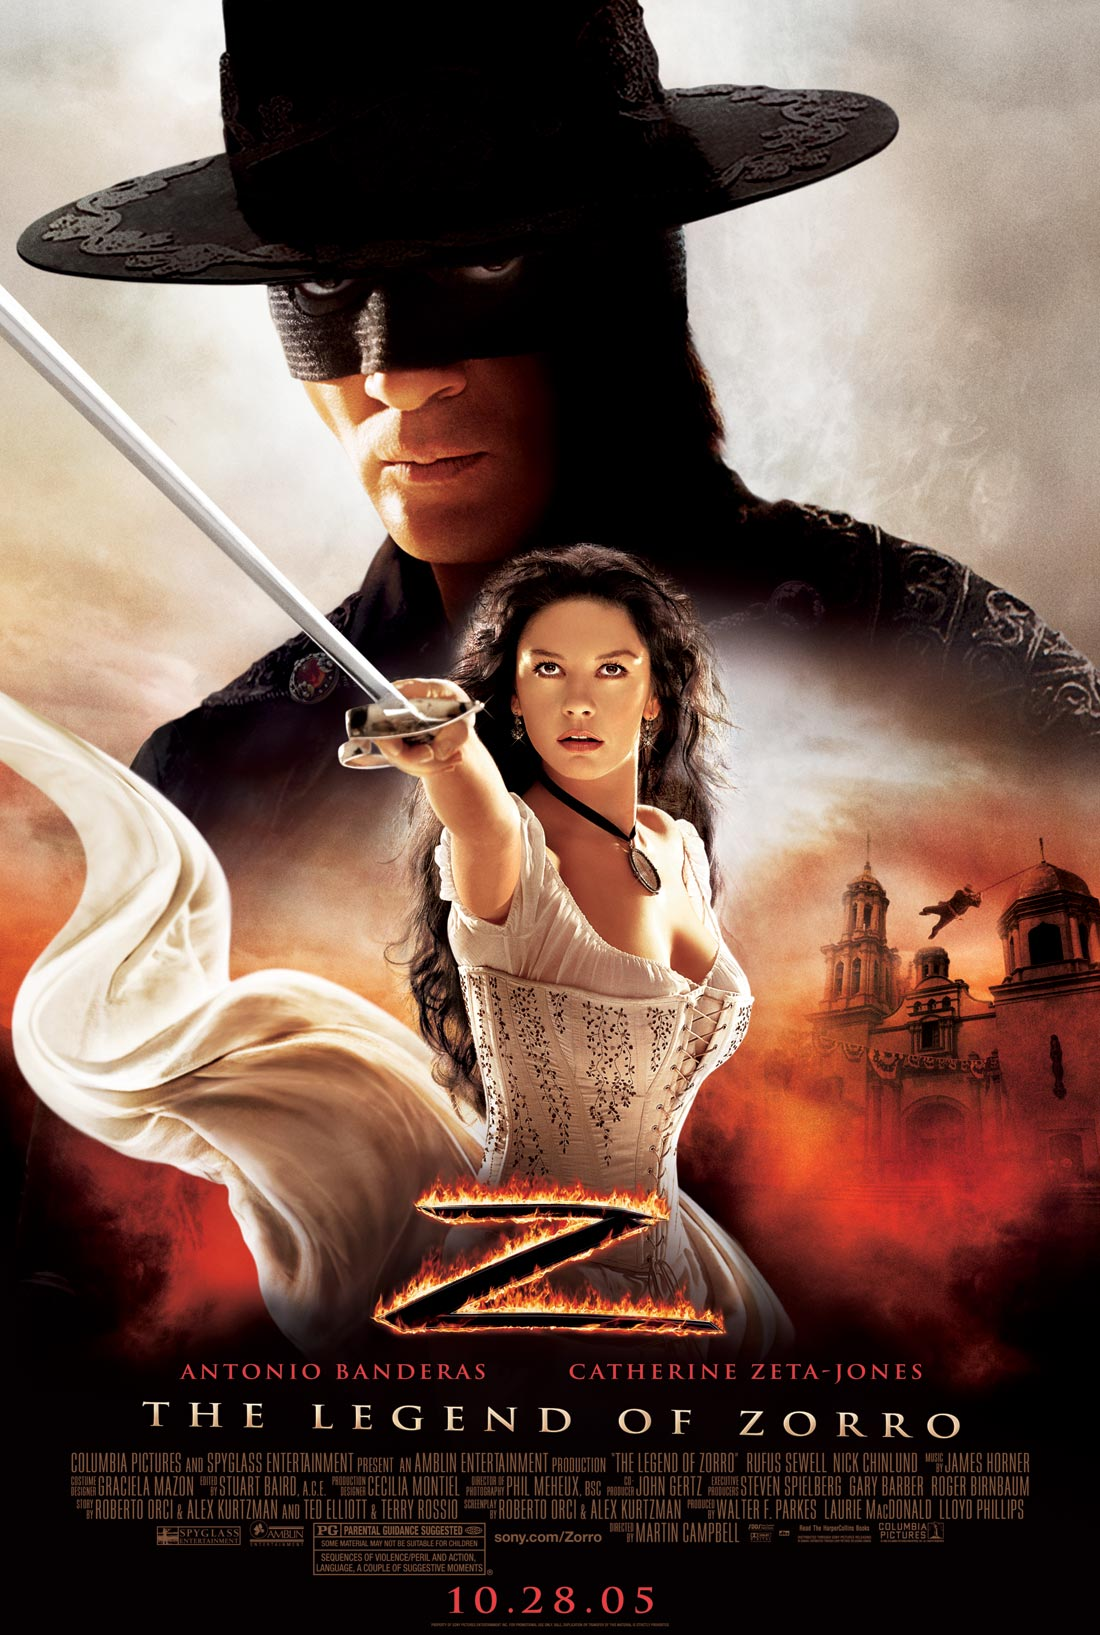 La leyenda del zorro (The legend of Zorro) (2005)